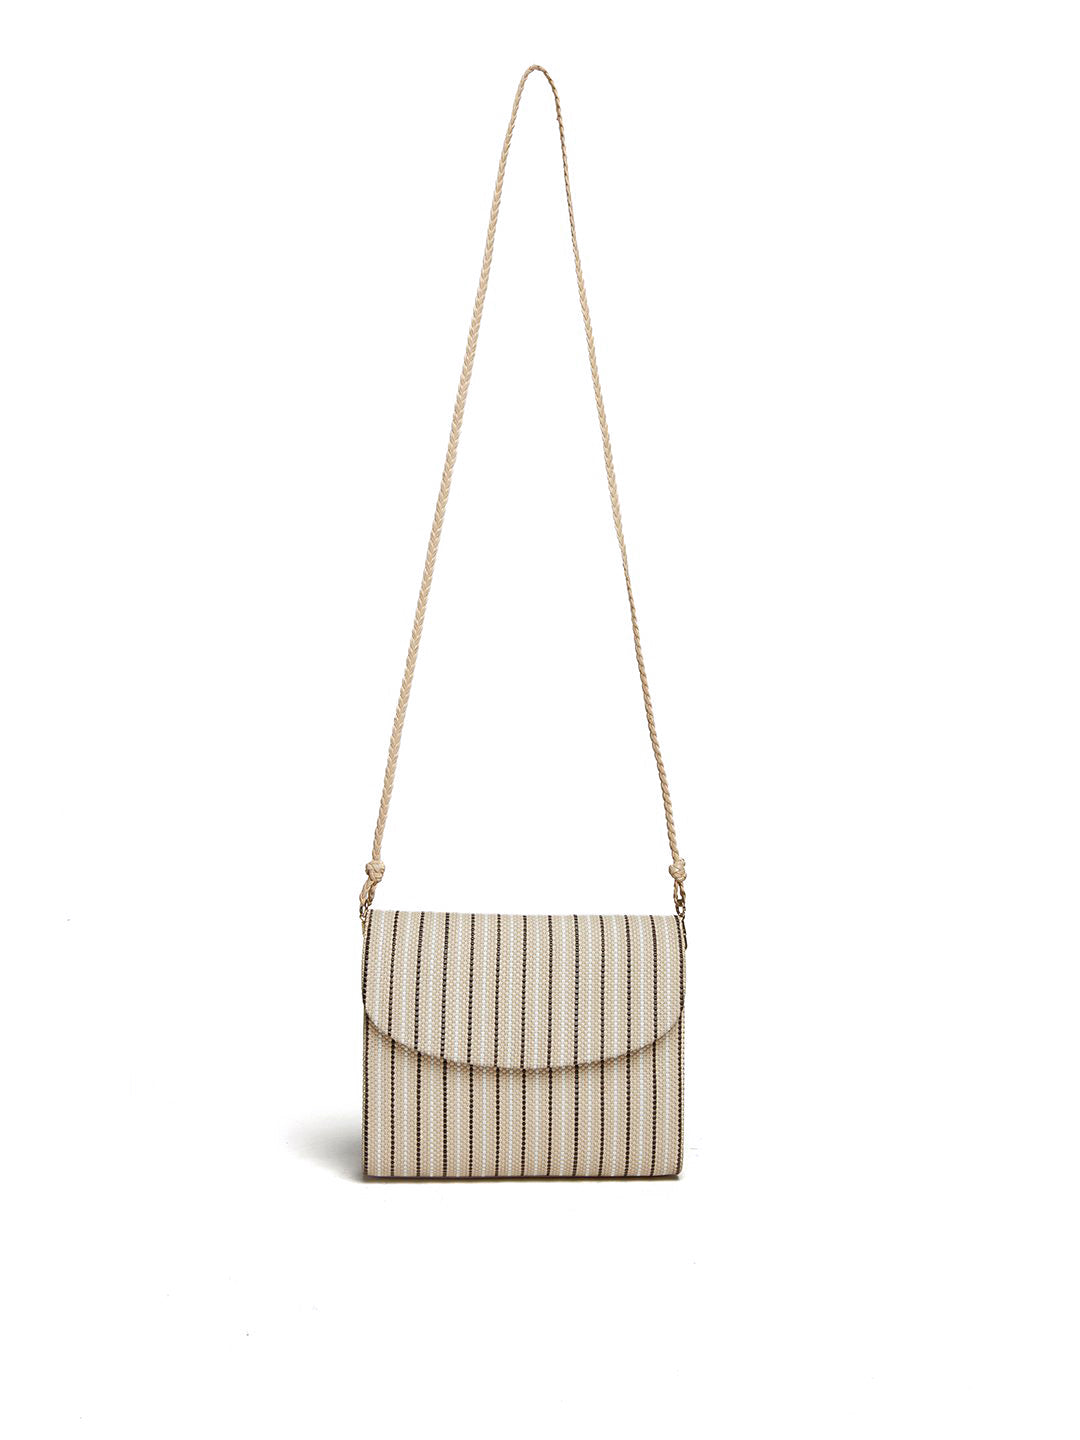 Vintage Striped Crossbody Bag With Braided Strap